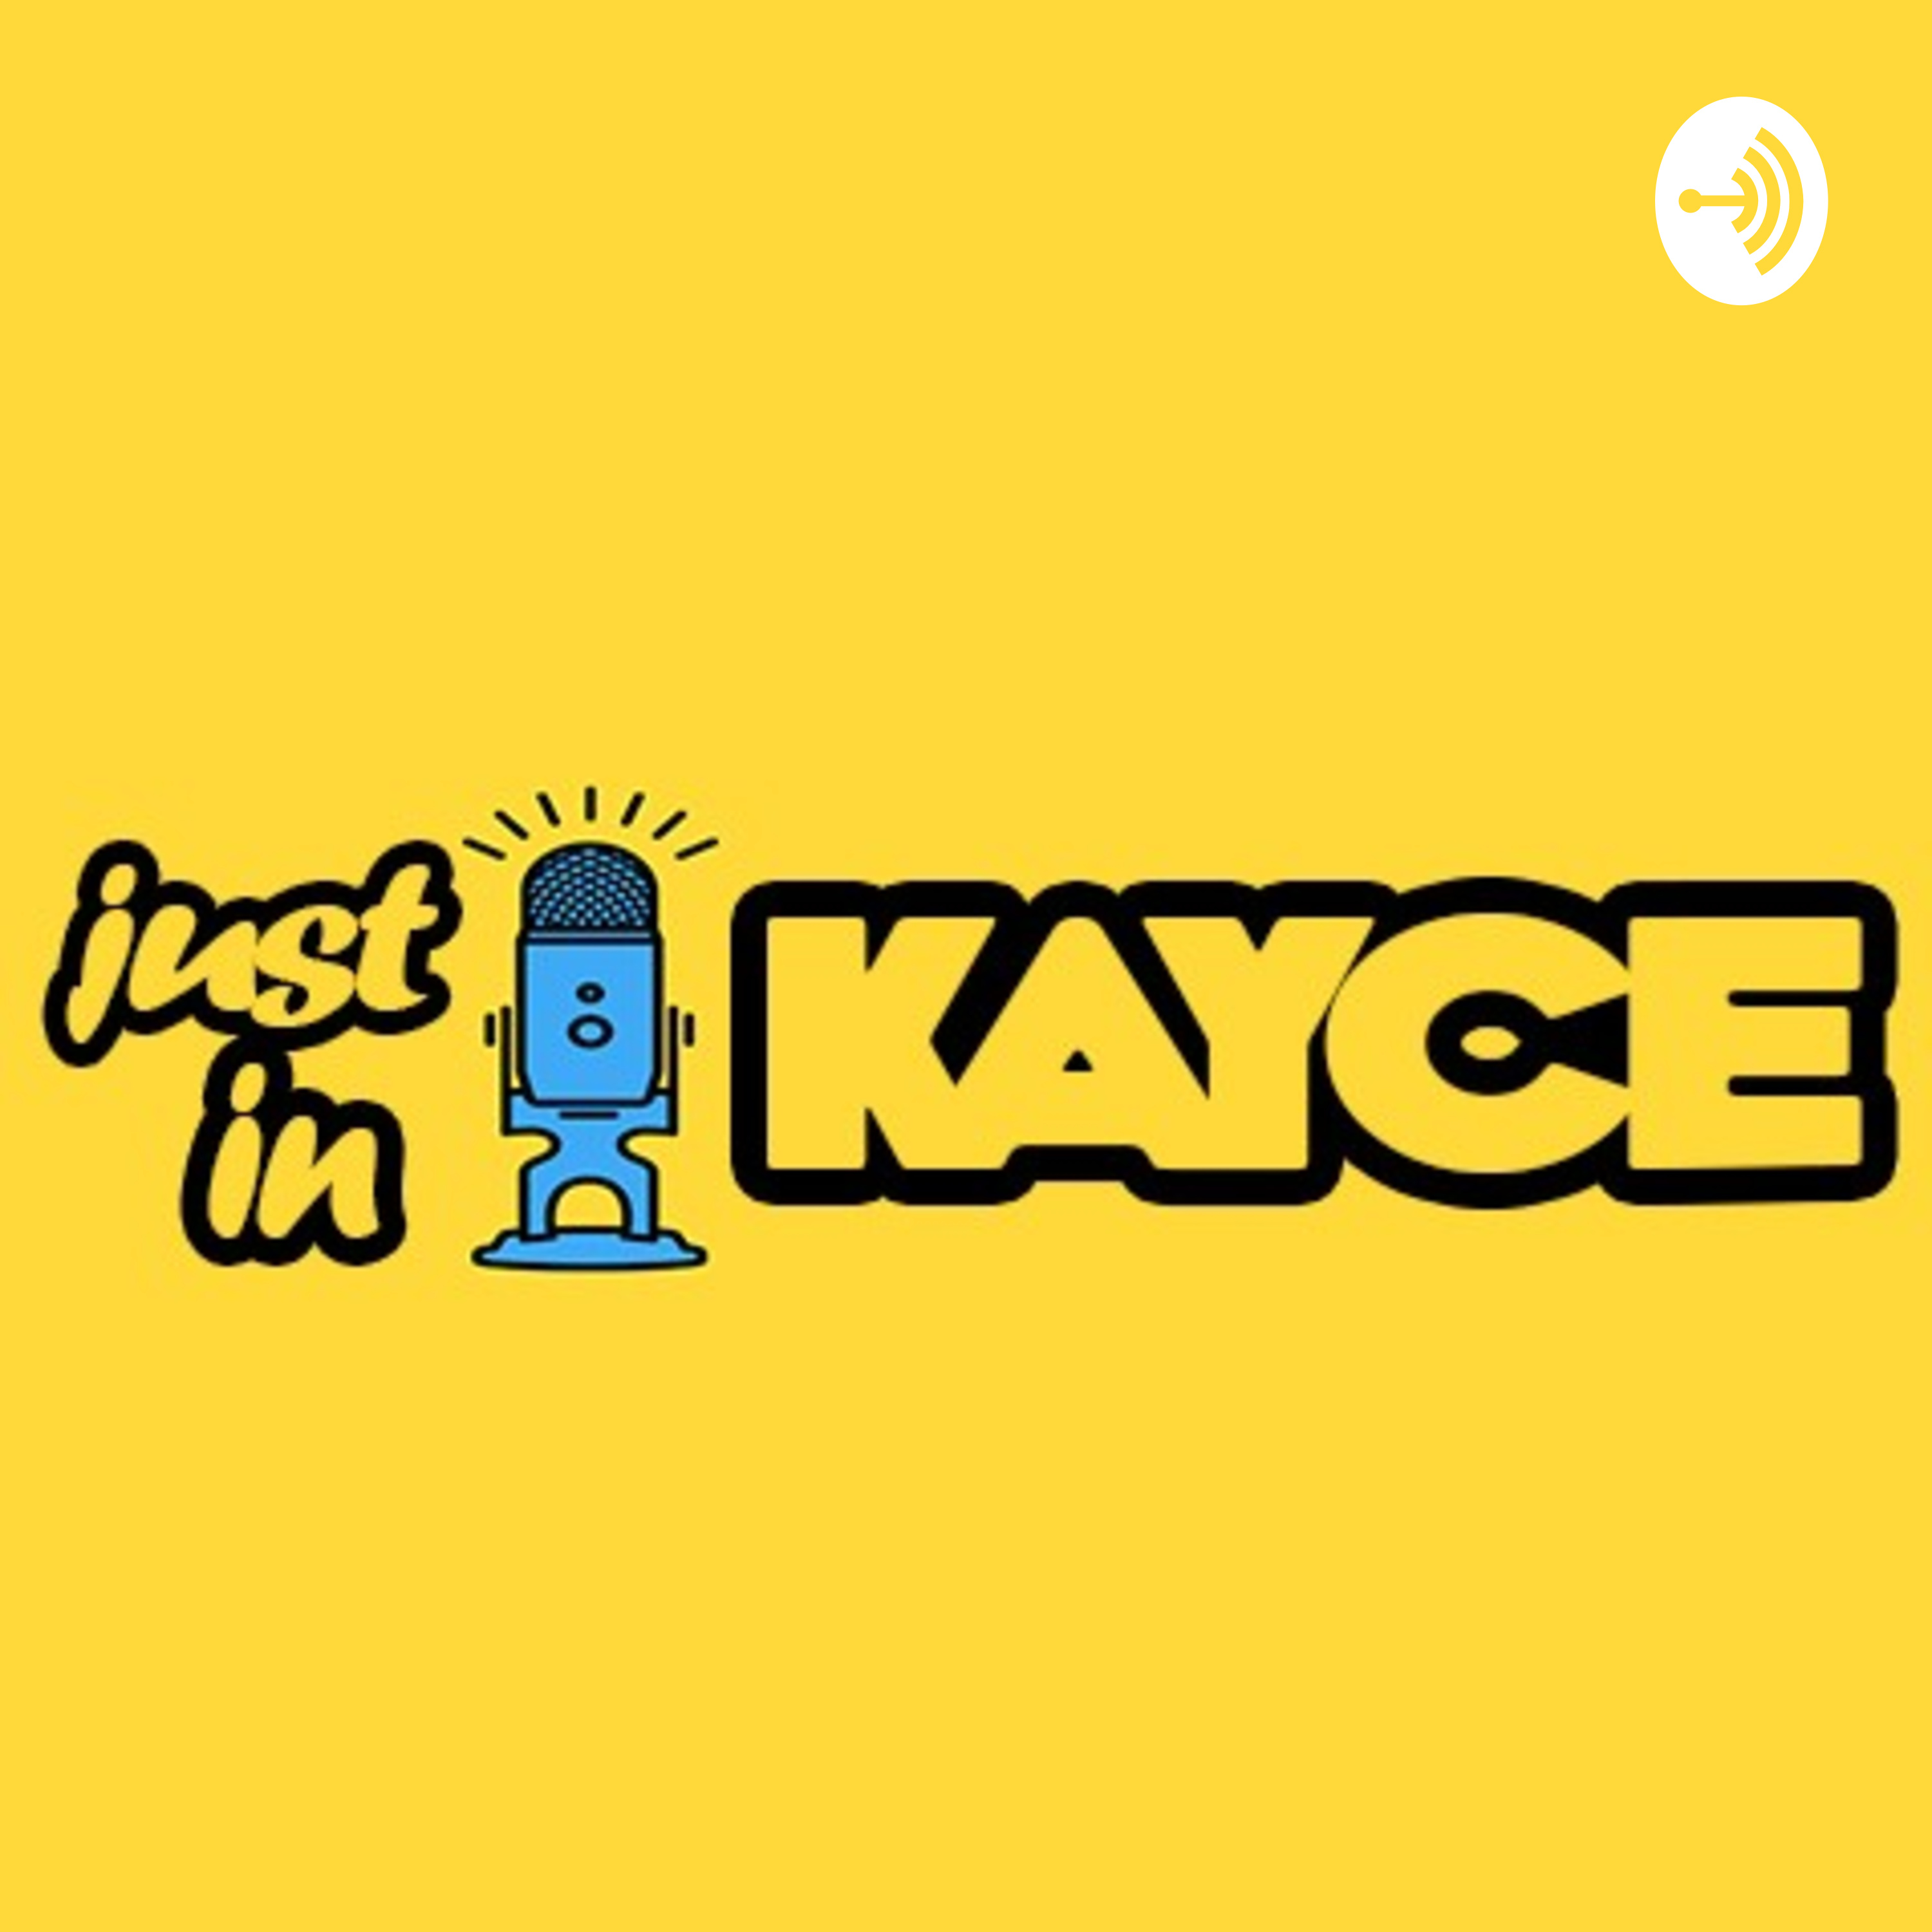 Just in Kayce